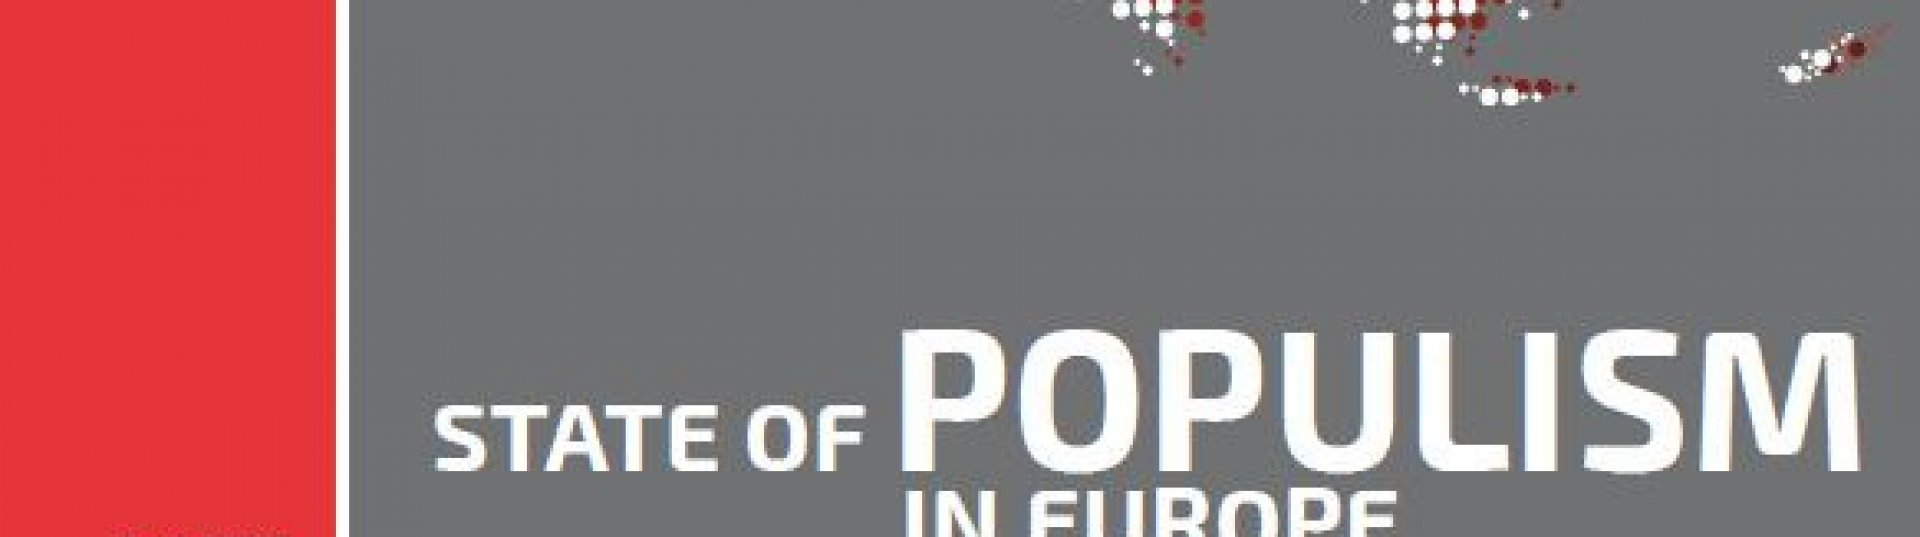 The State of Populism in Europe 2018